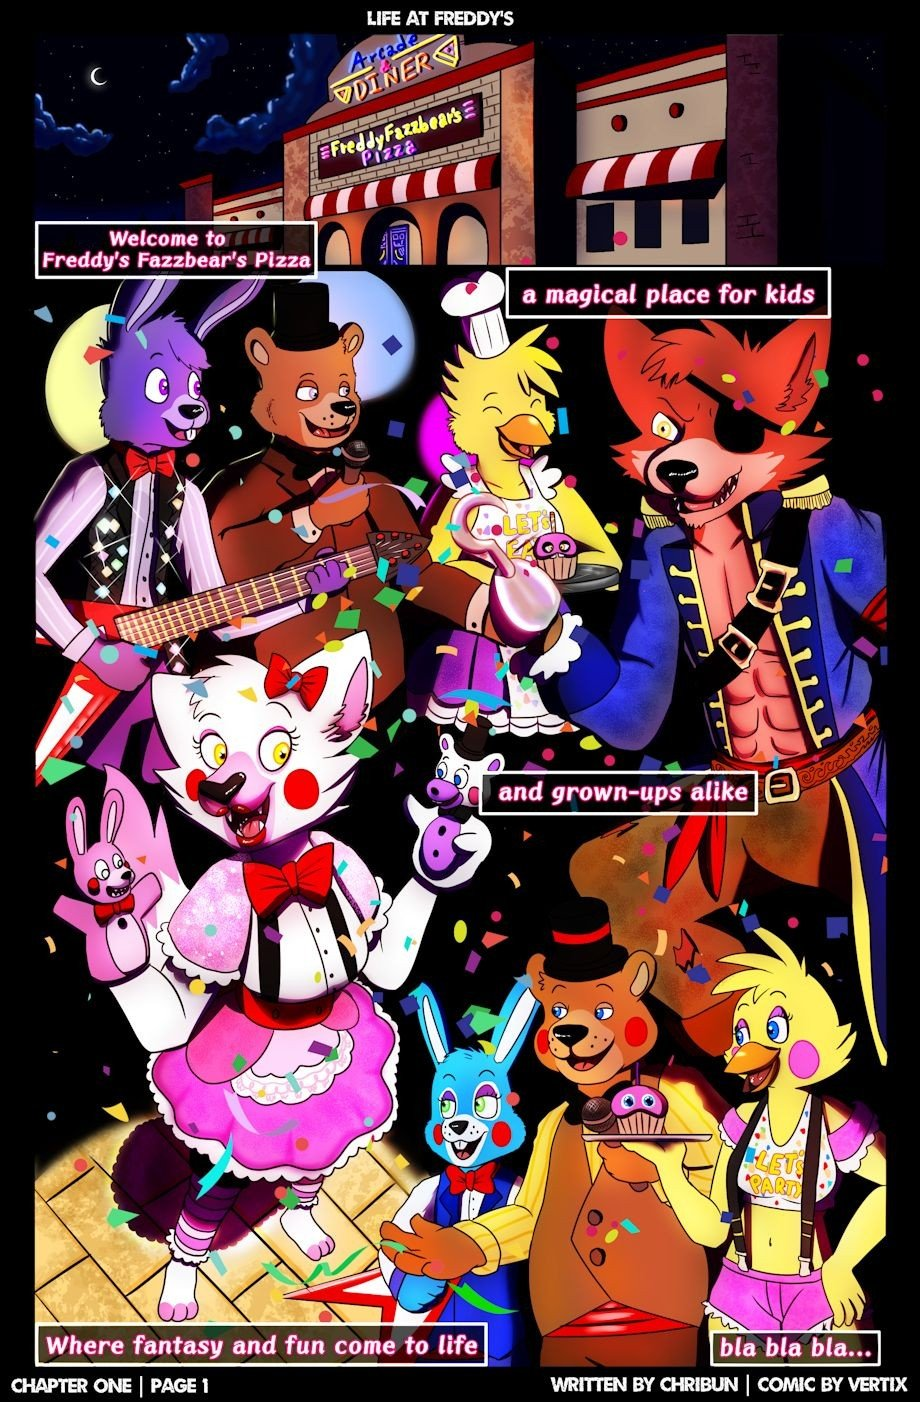 Five Nights At Freddys Life At Freddys Chapter One 03